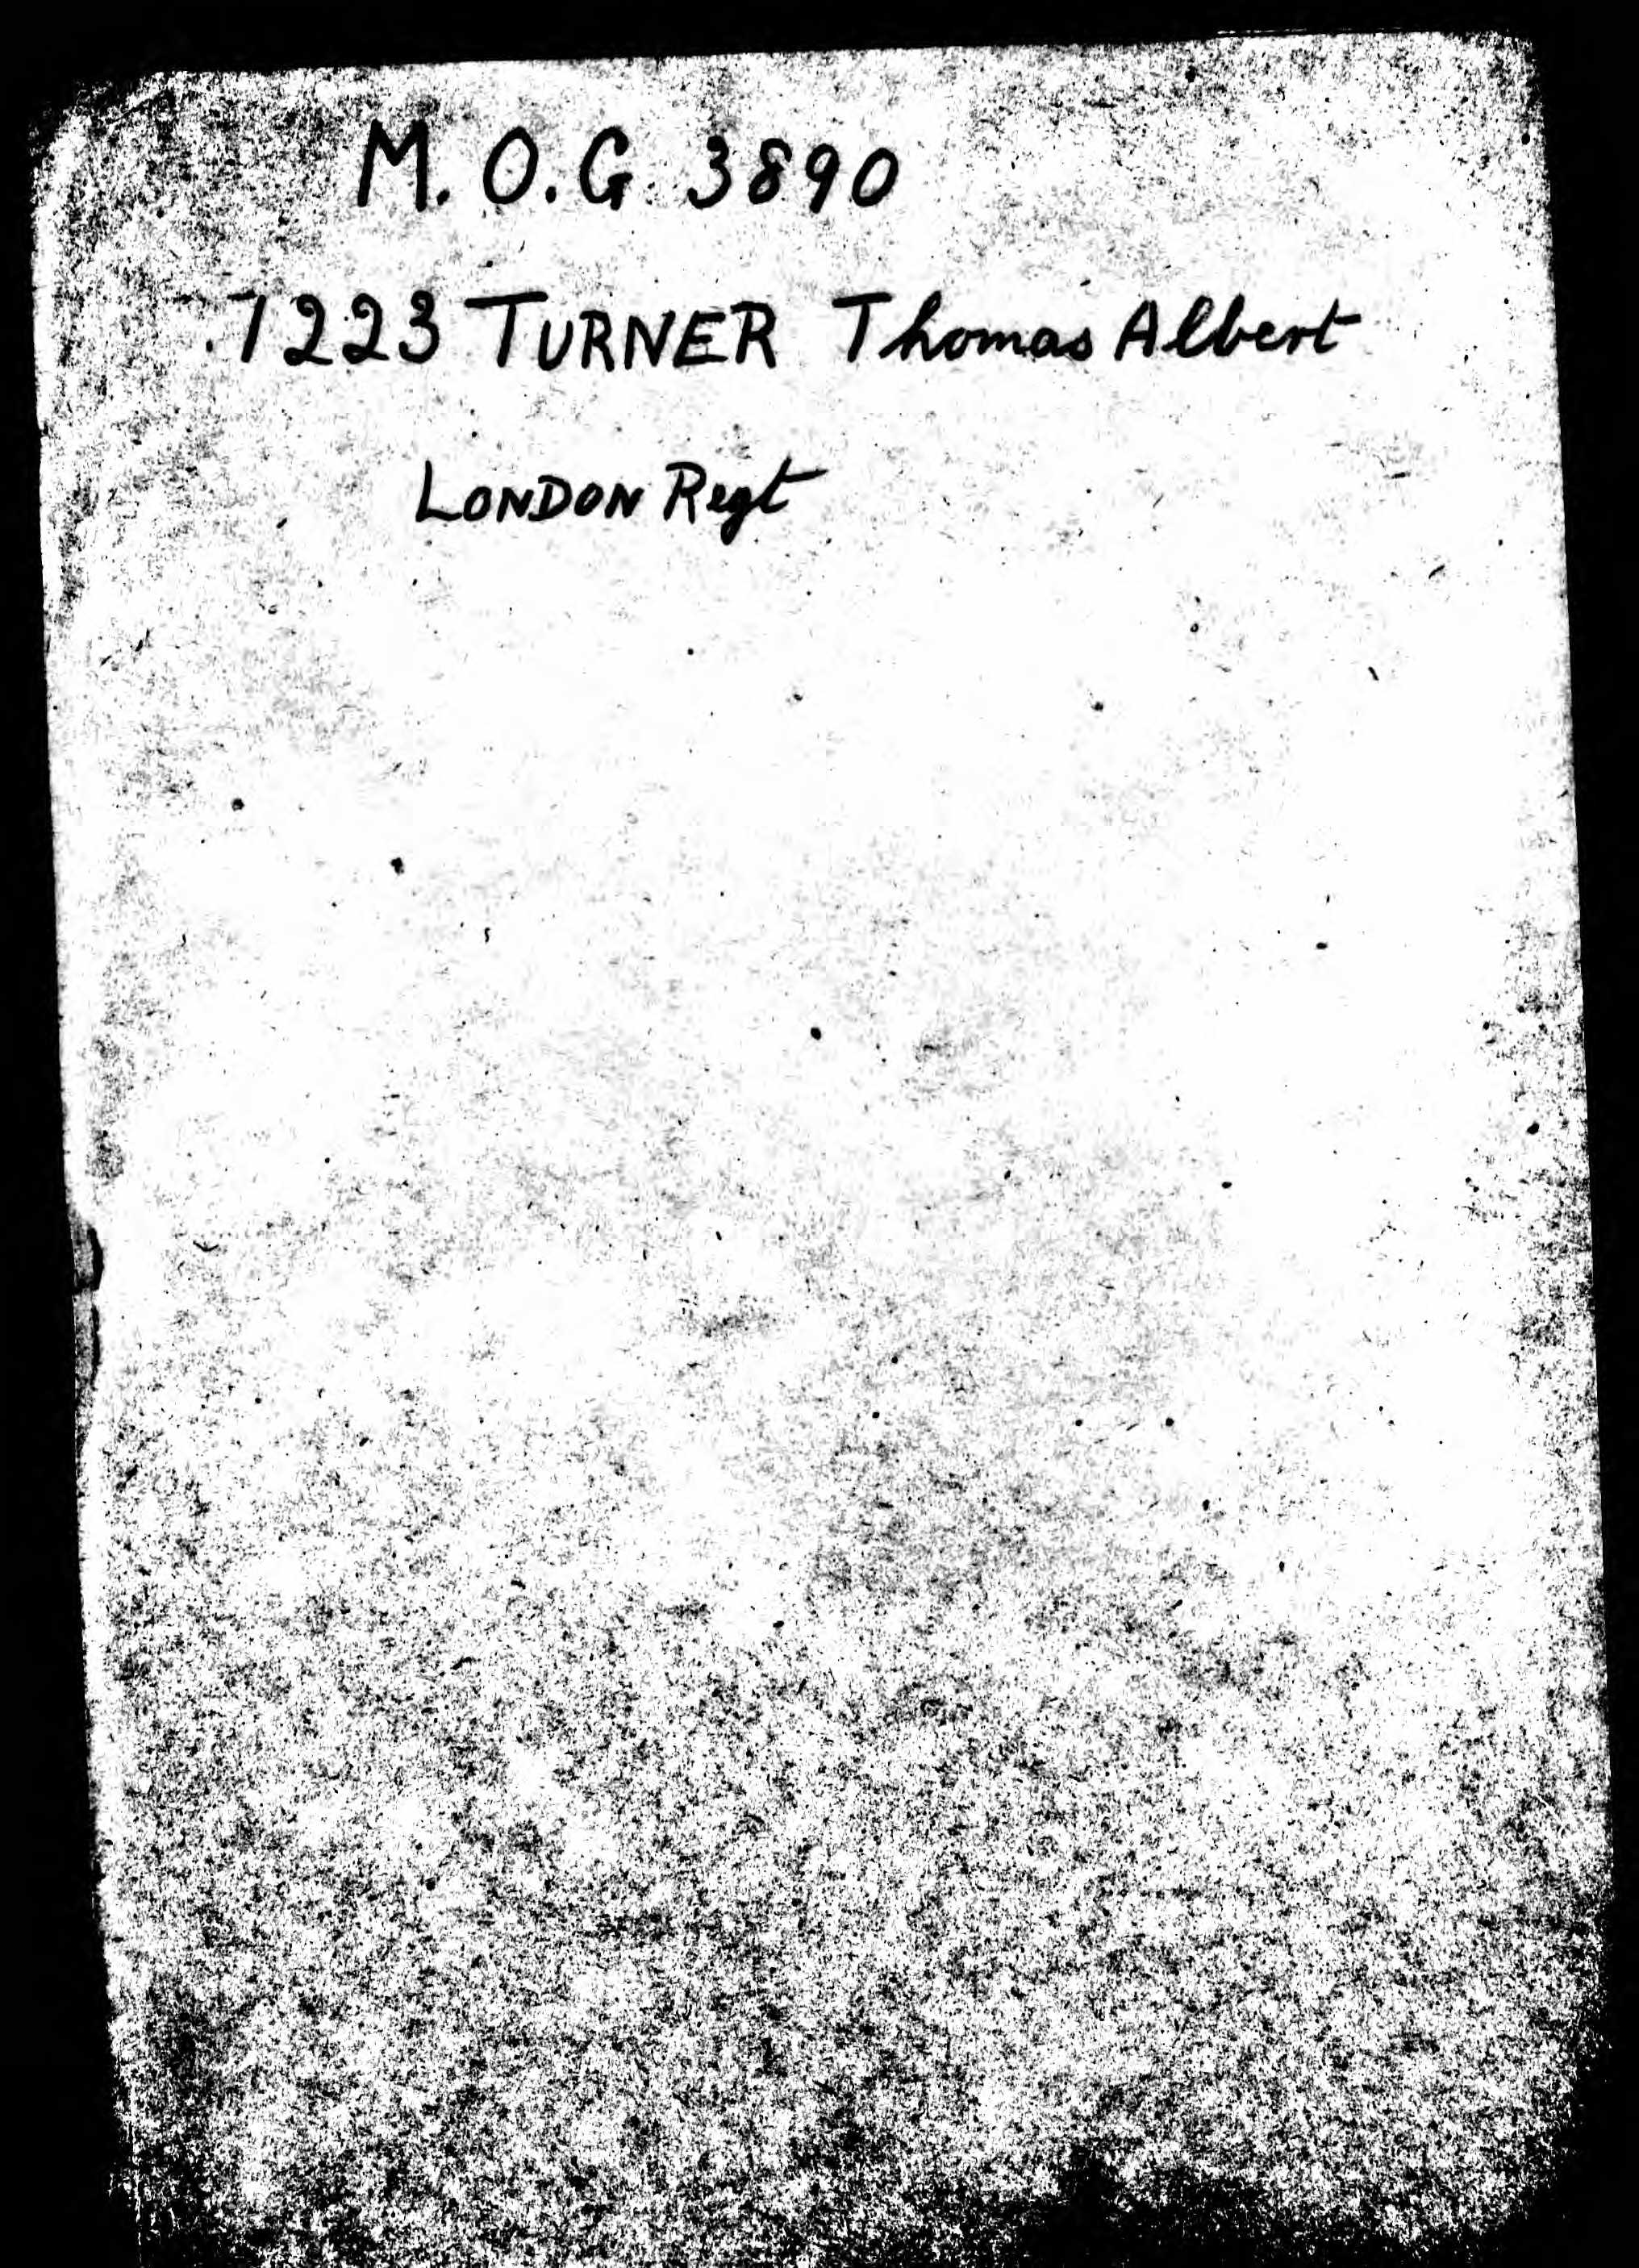 British Army WWI Pension Record for Thomas Albert Turner p01